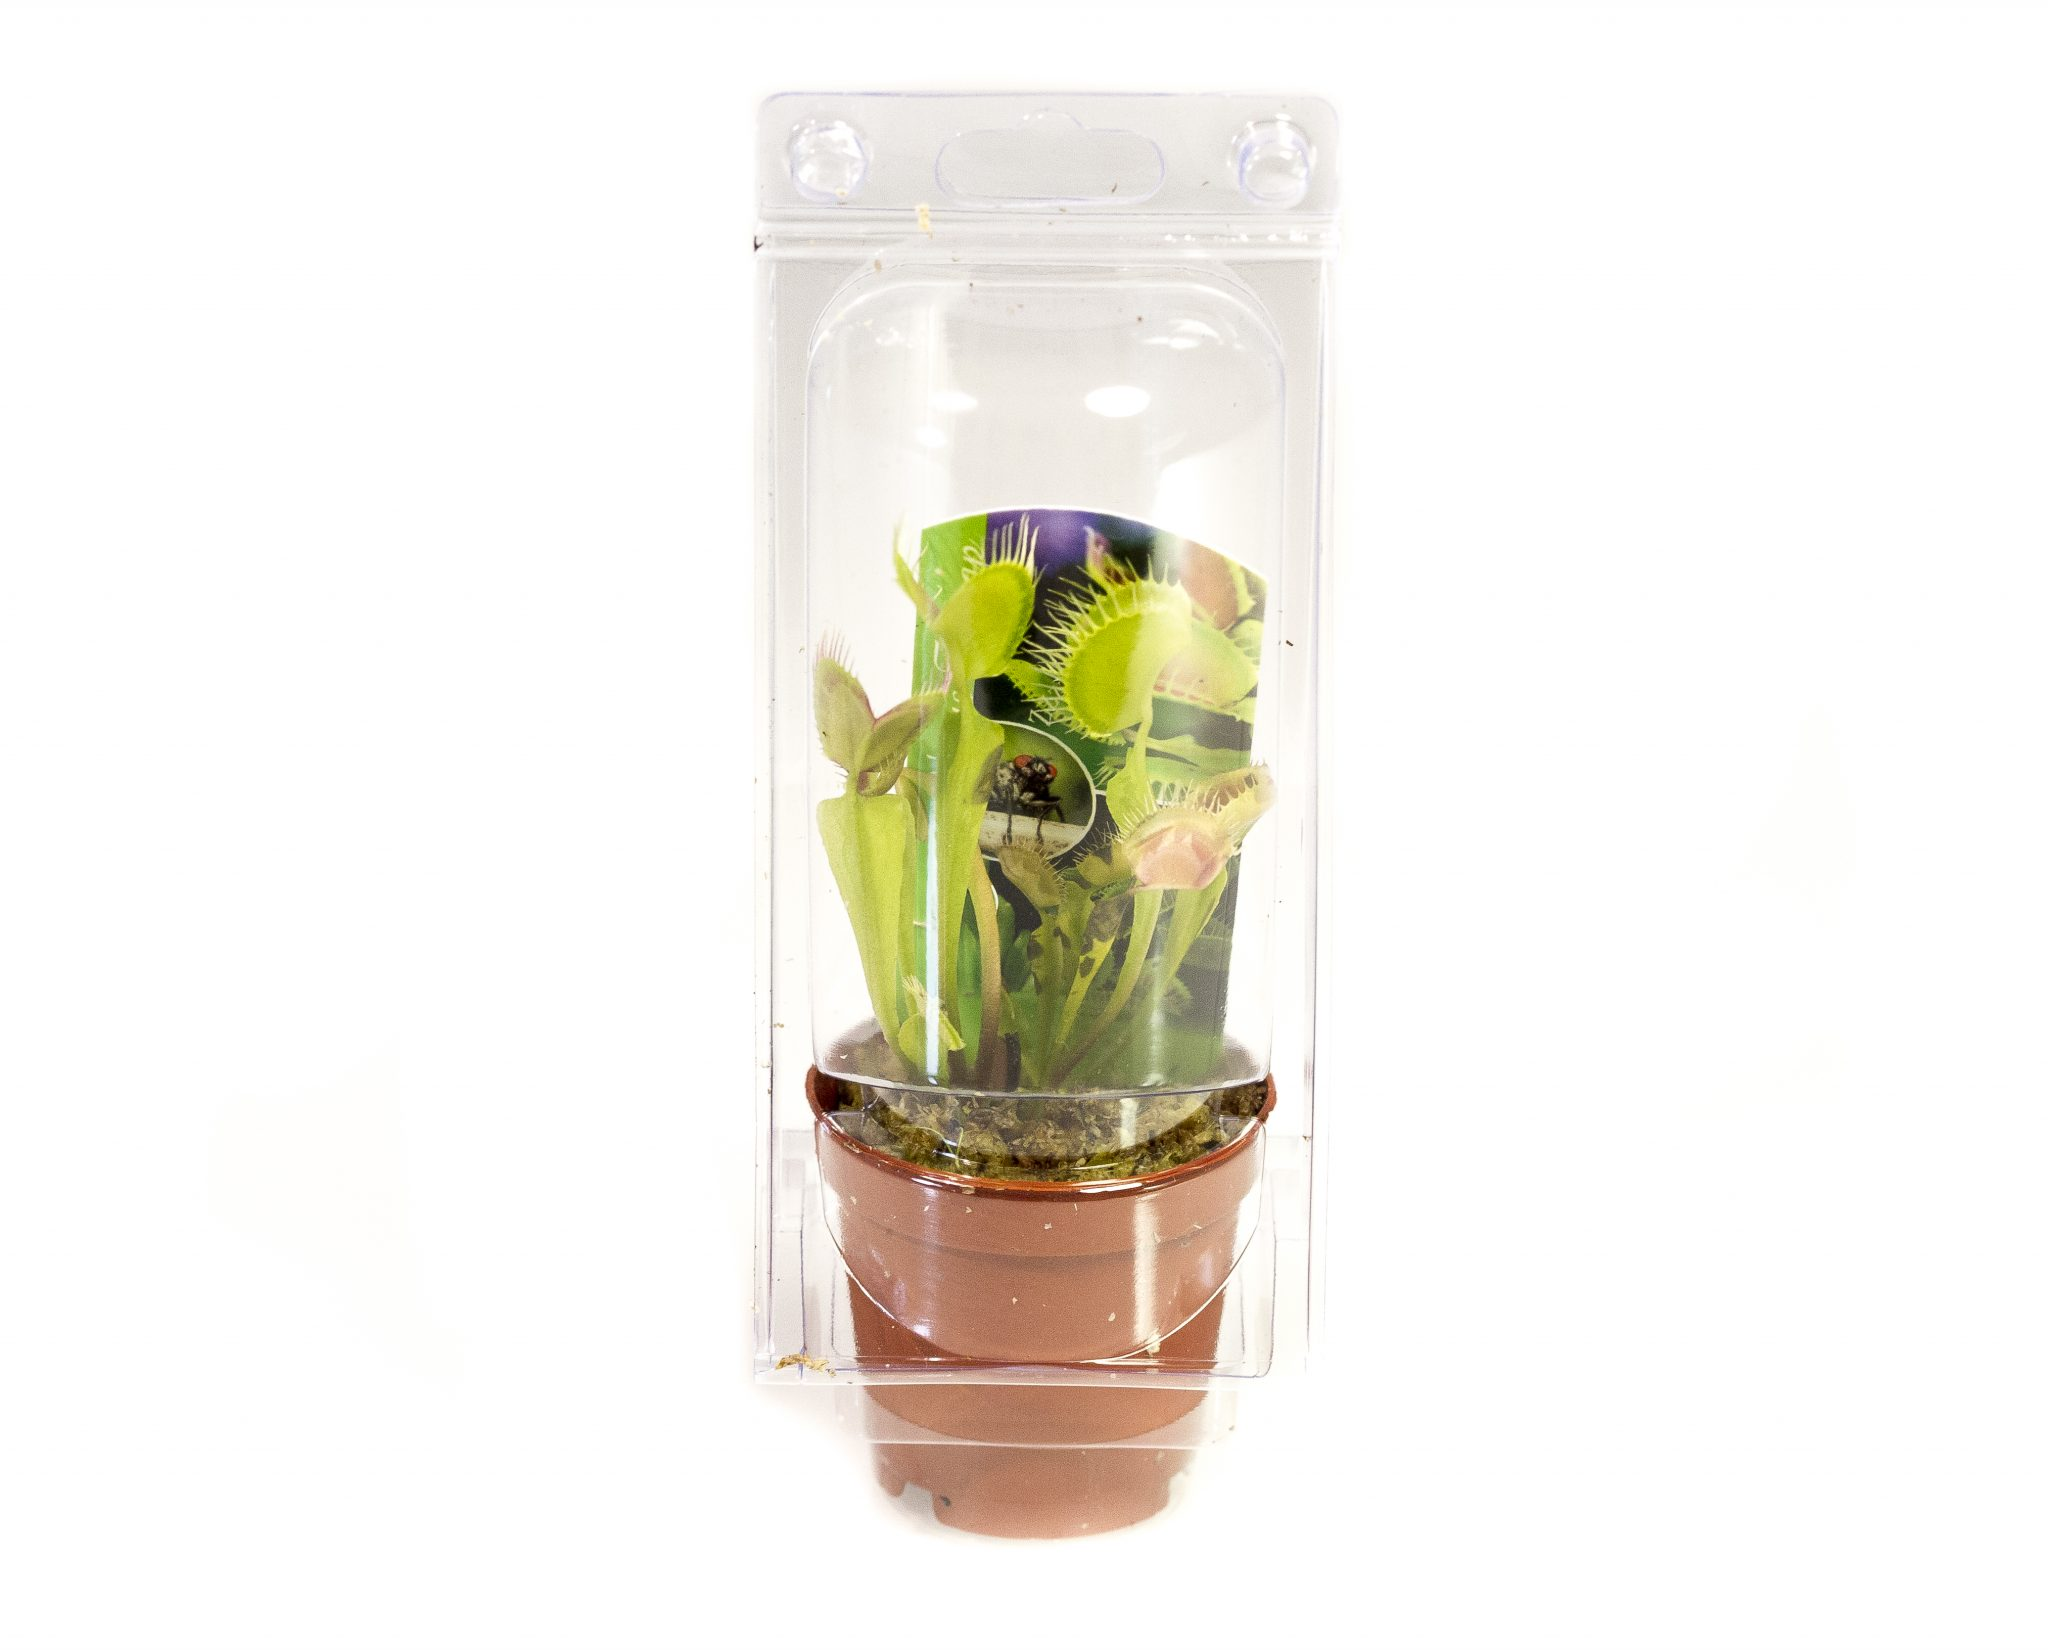 PLANT VENUS FLY TRAP